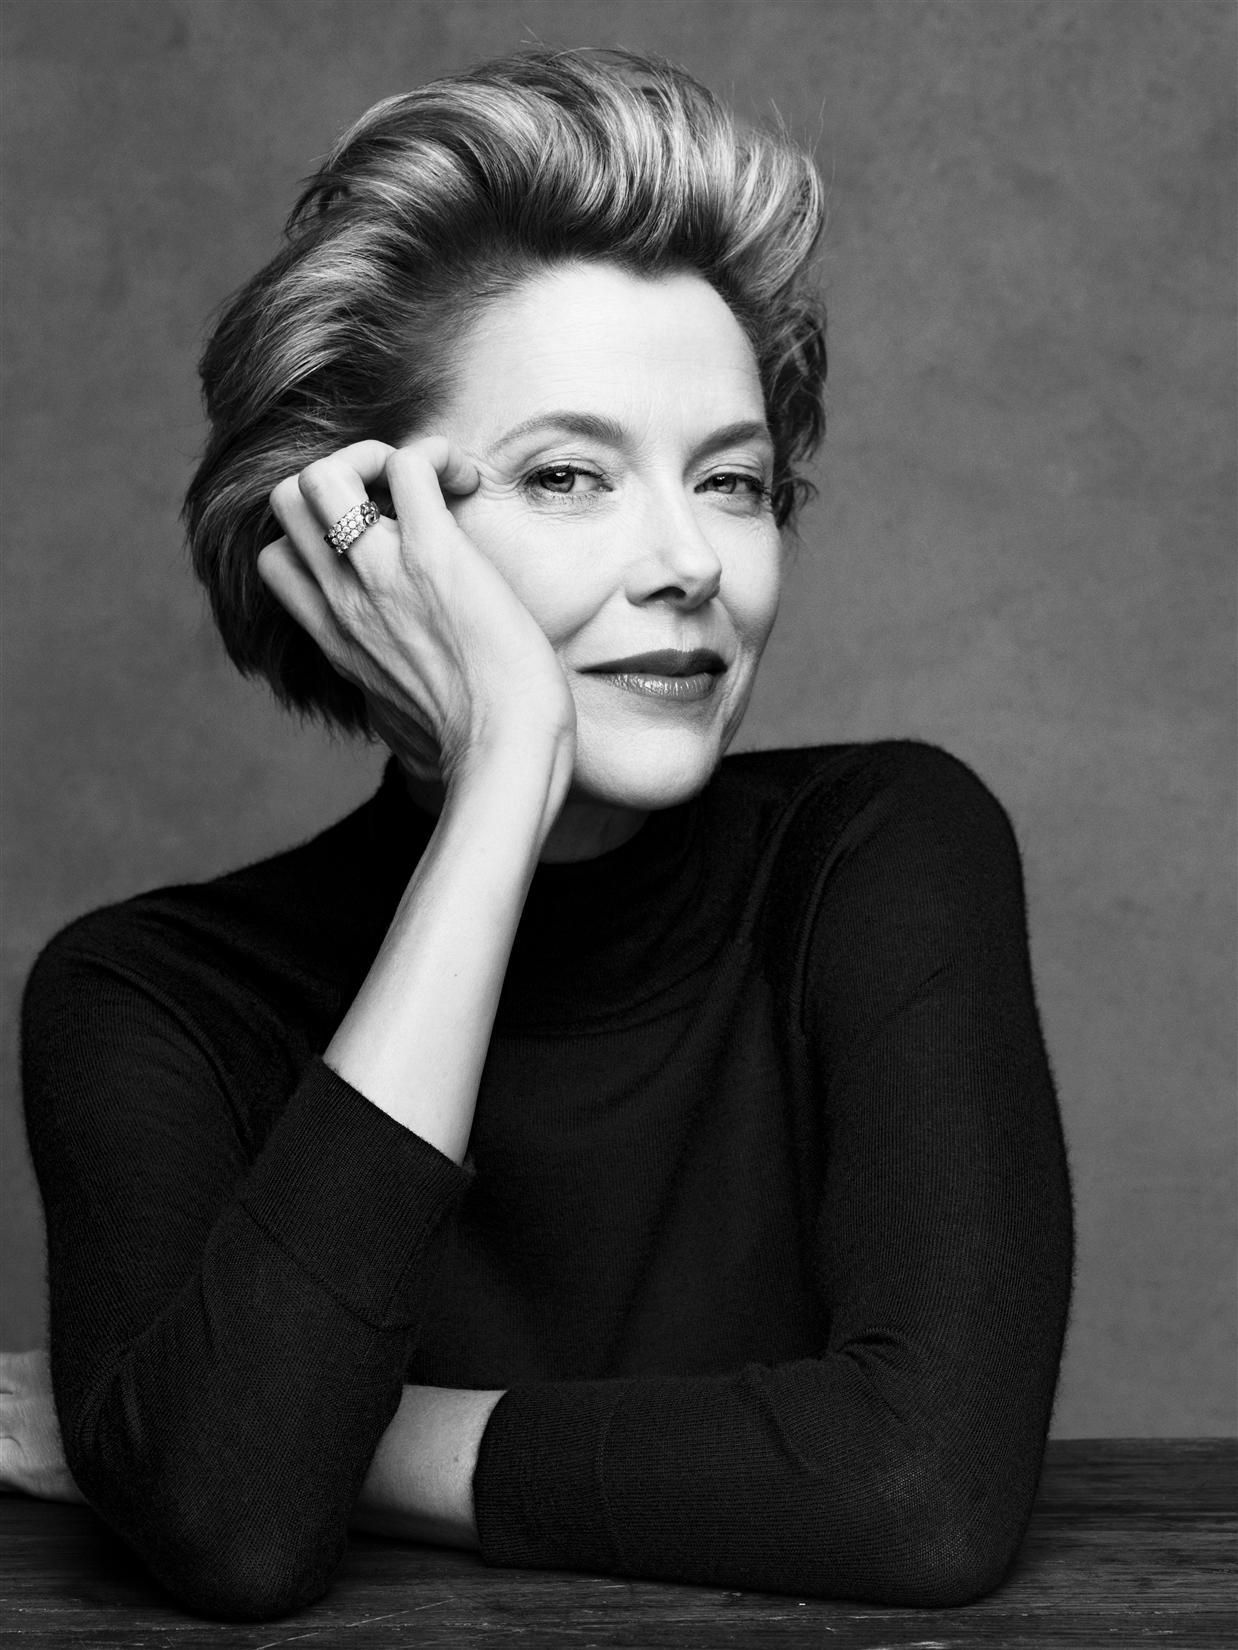 Annette Bening (1958) - American actress. Photo © Patrick Demarchelier